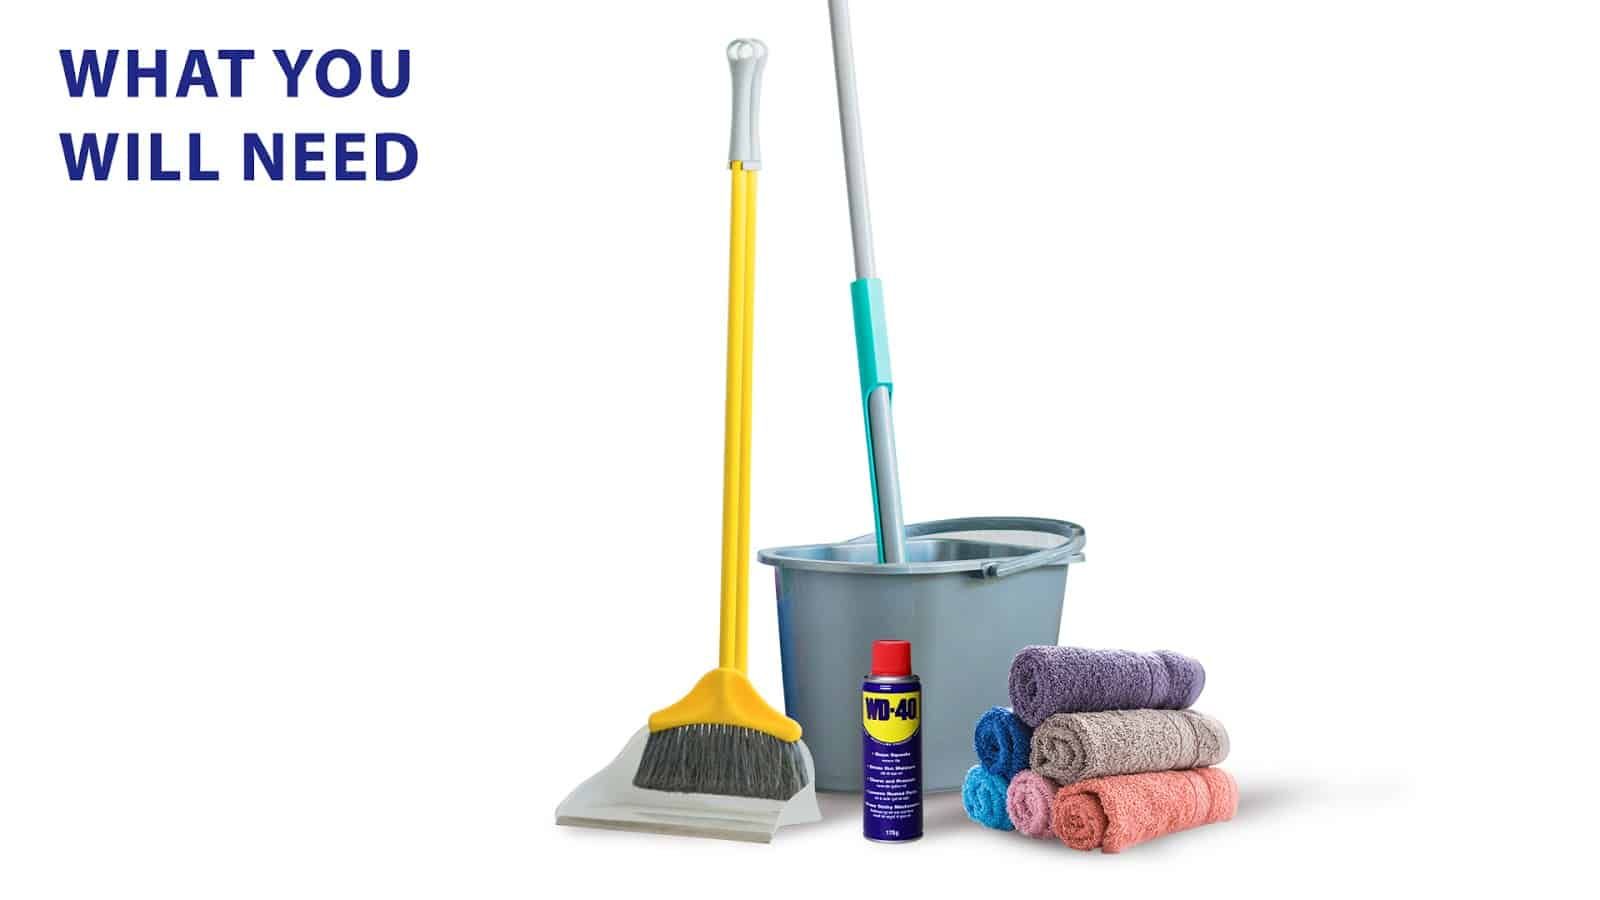 The Ultimate House Cleaning Checklist